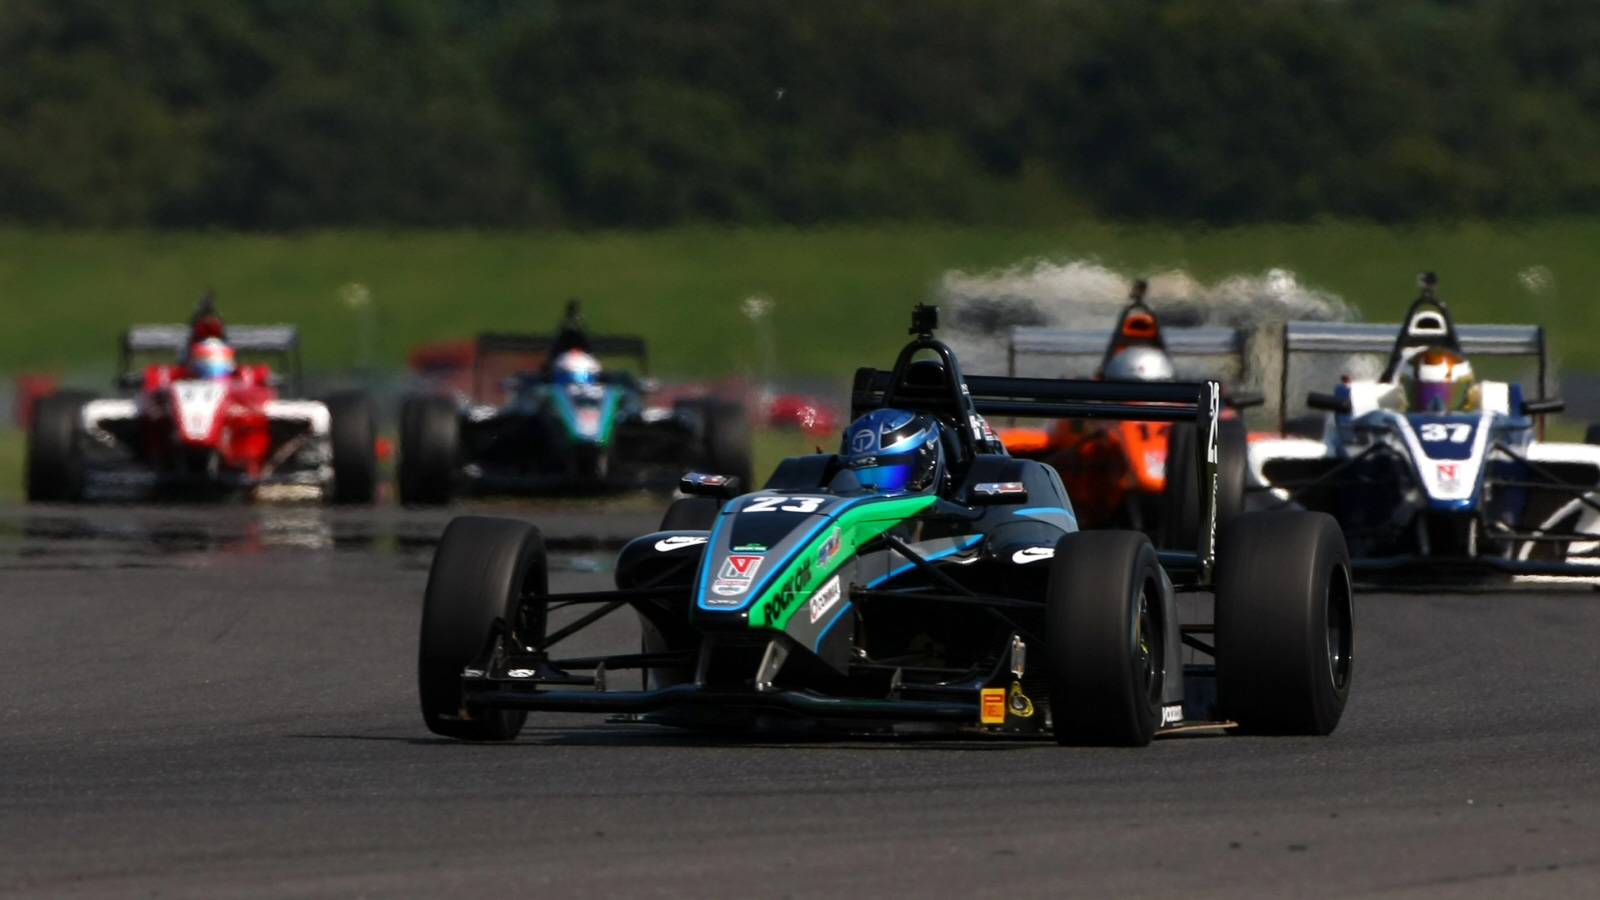 Donington Park Grand Prix Circuit in Leicestershire will host rounds 19, 20 and 21 of the BRDC F4 season.